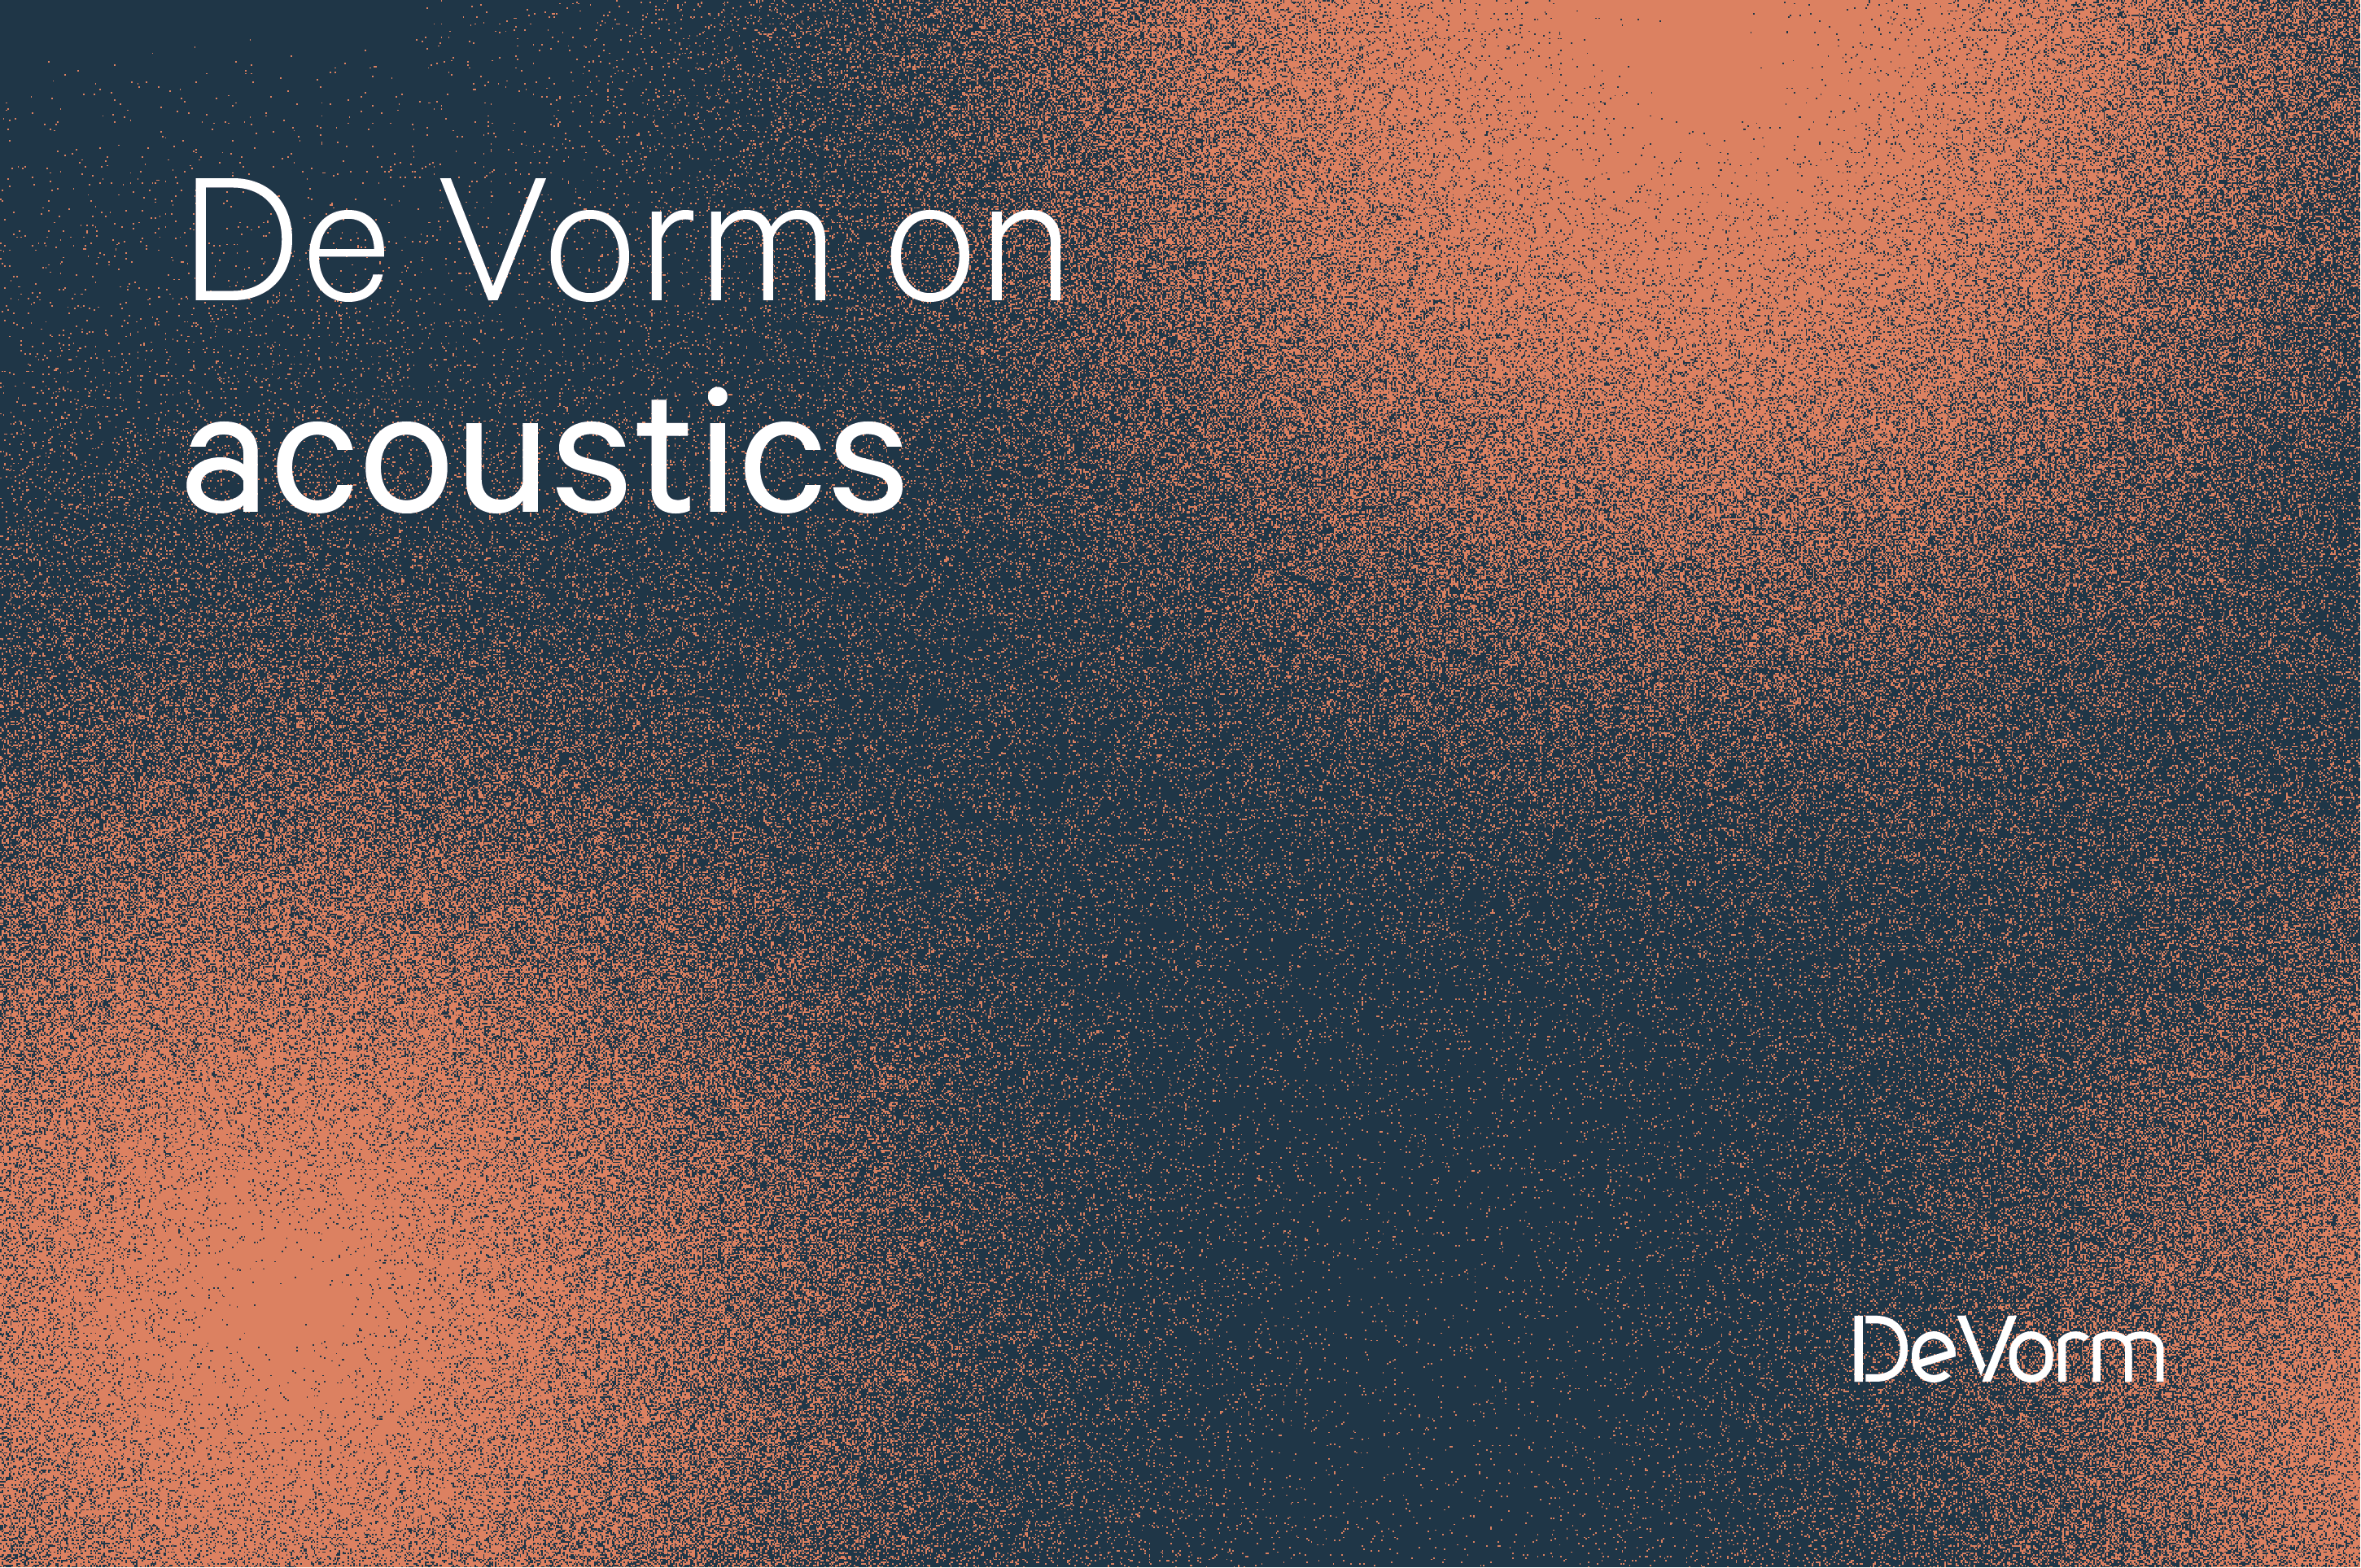 devorm-on-acoustics-05